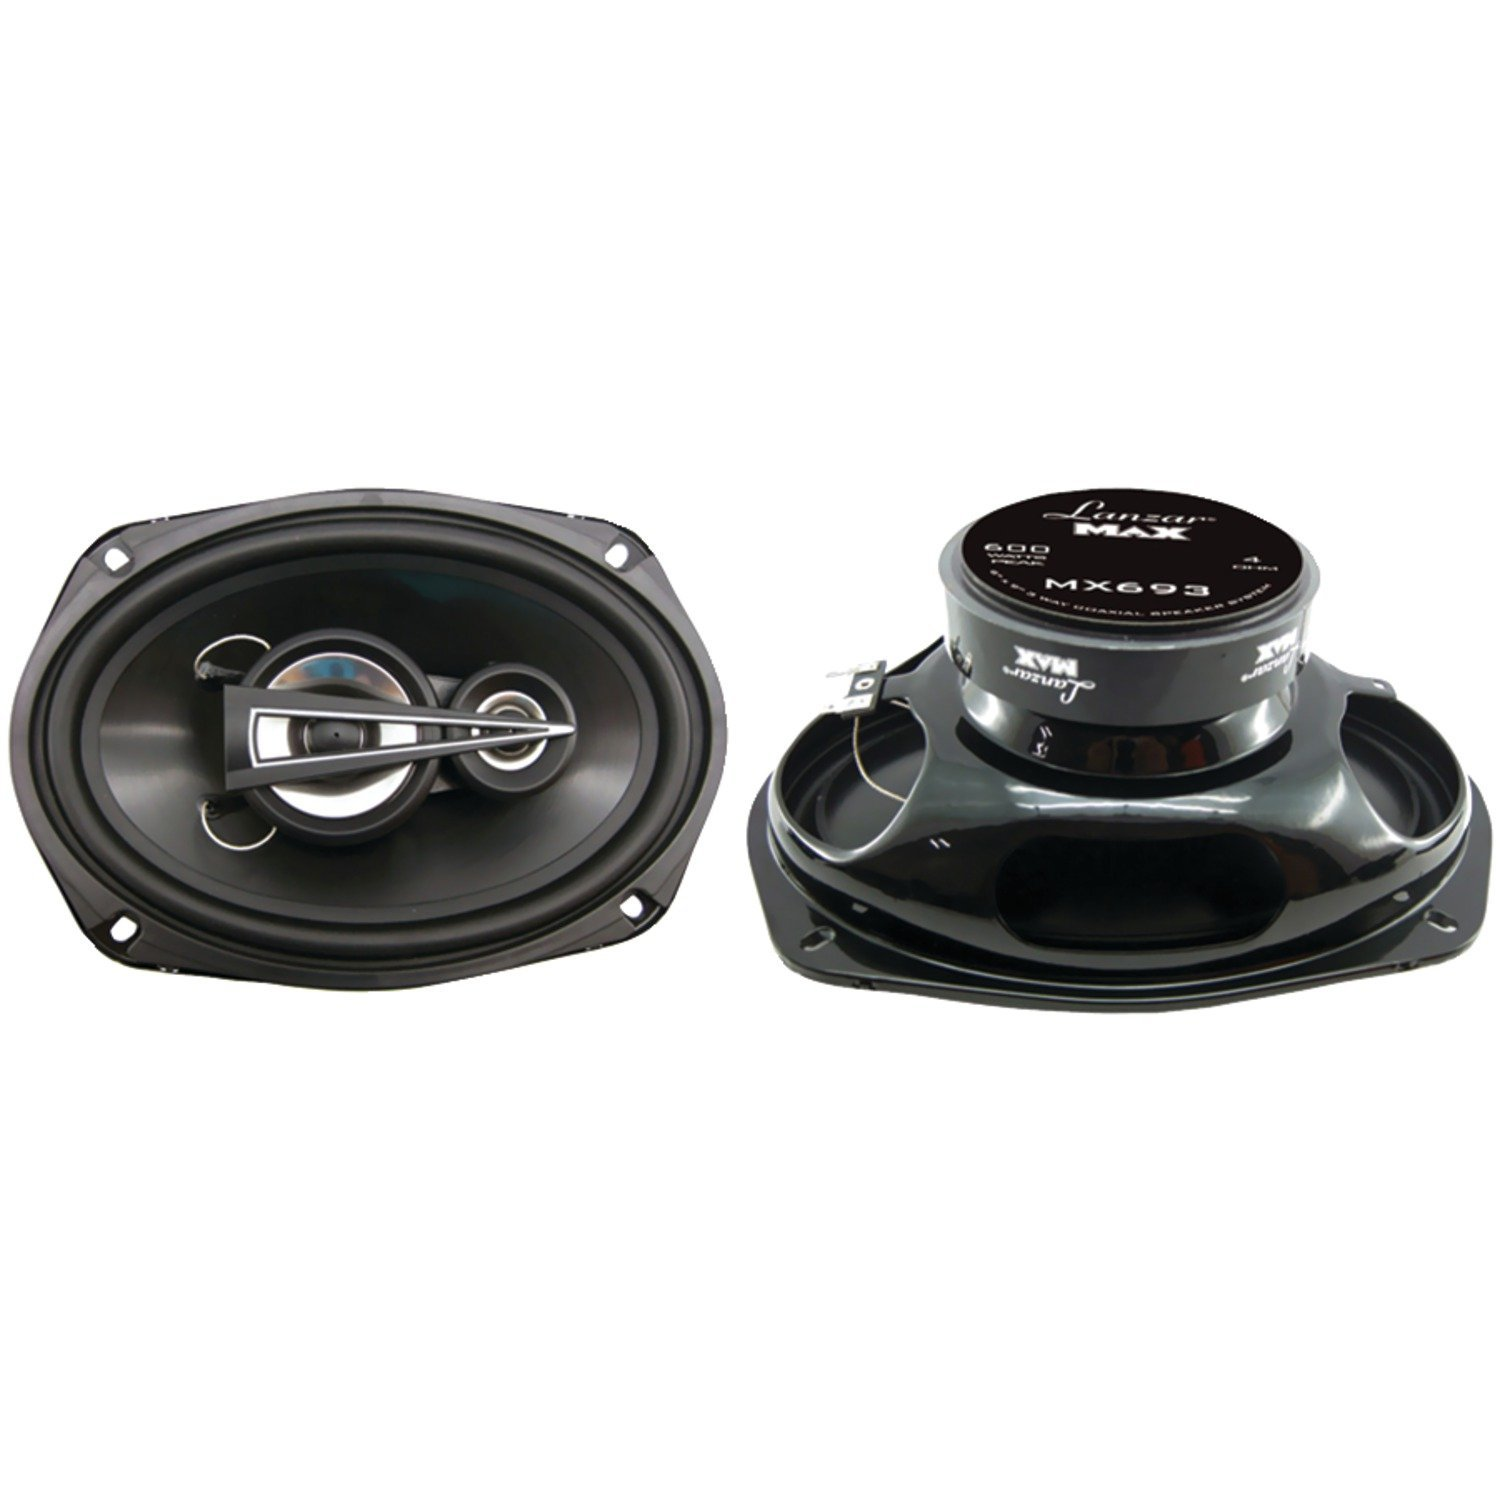 7 kHz Frequency Response 30 Oz Magnet Structure 4 Ohm w// Glass Fiber Cone and Butyl Rubber Surround High Power Coaxial Speaker Powerful 400 Watt Peak 65Hz Lanzar Upgraded Opti Pro 6.5 OPTI6PM,BLACK